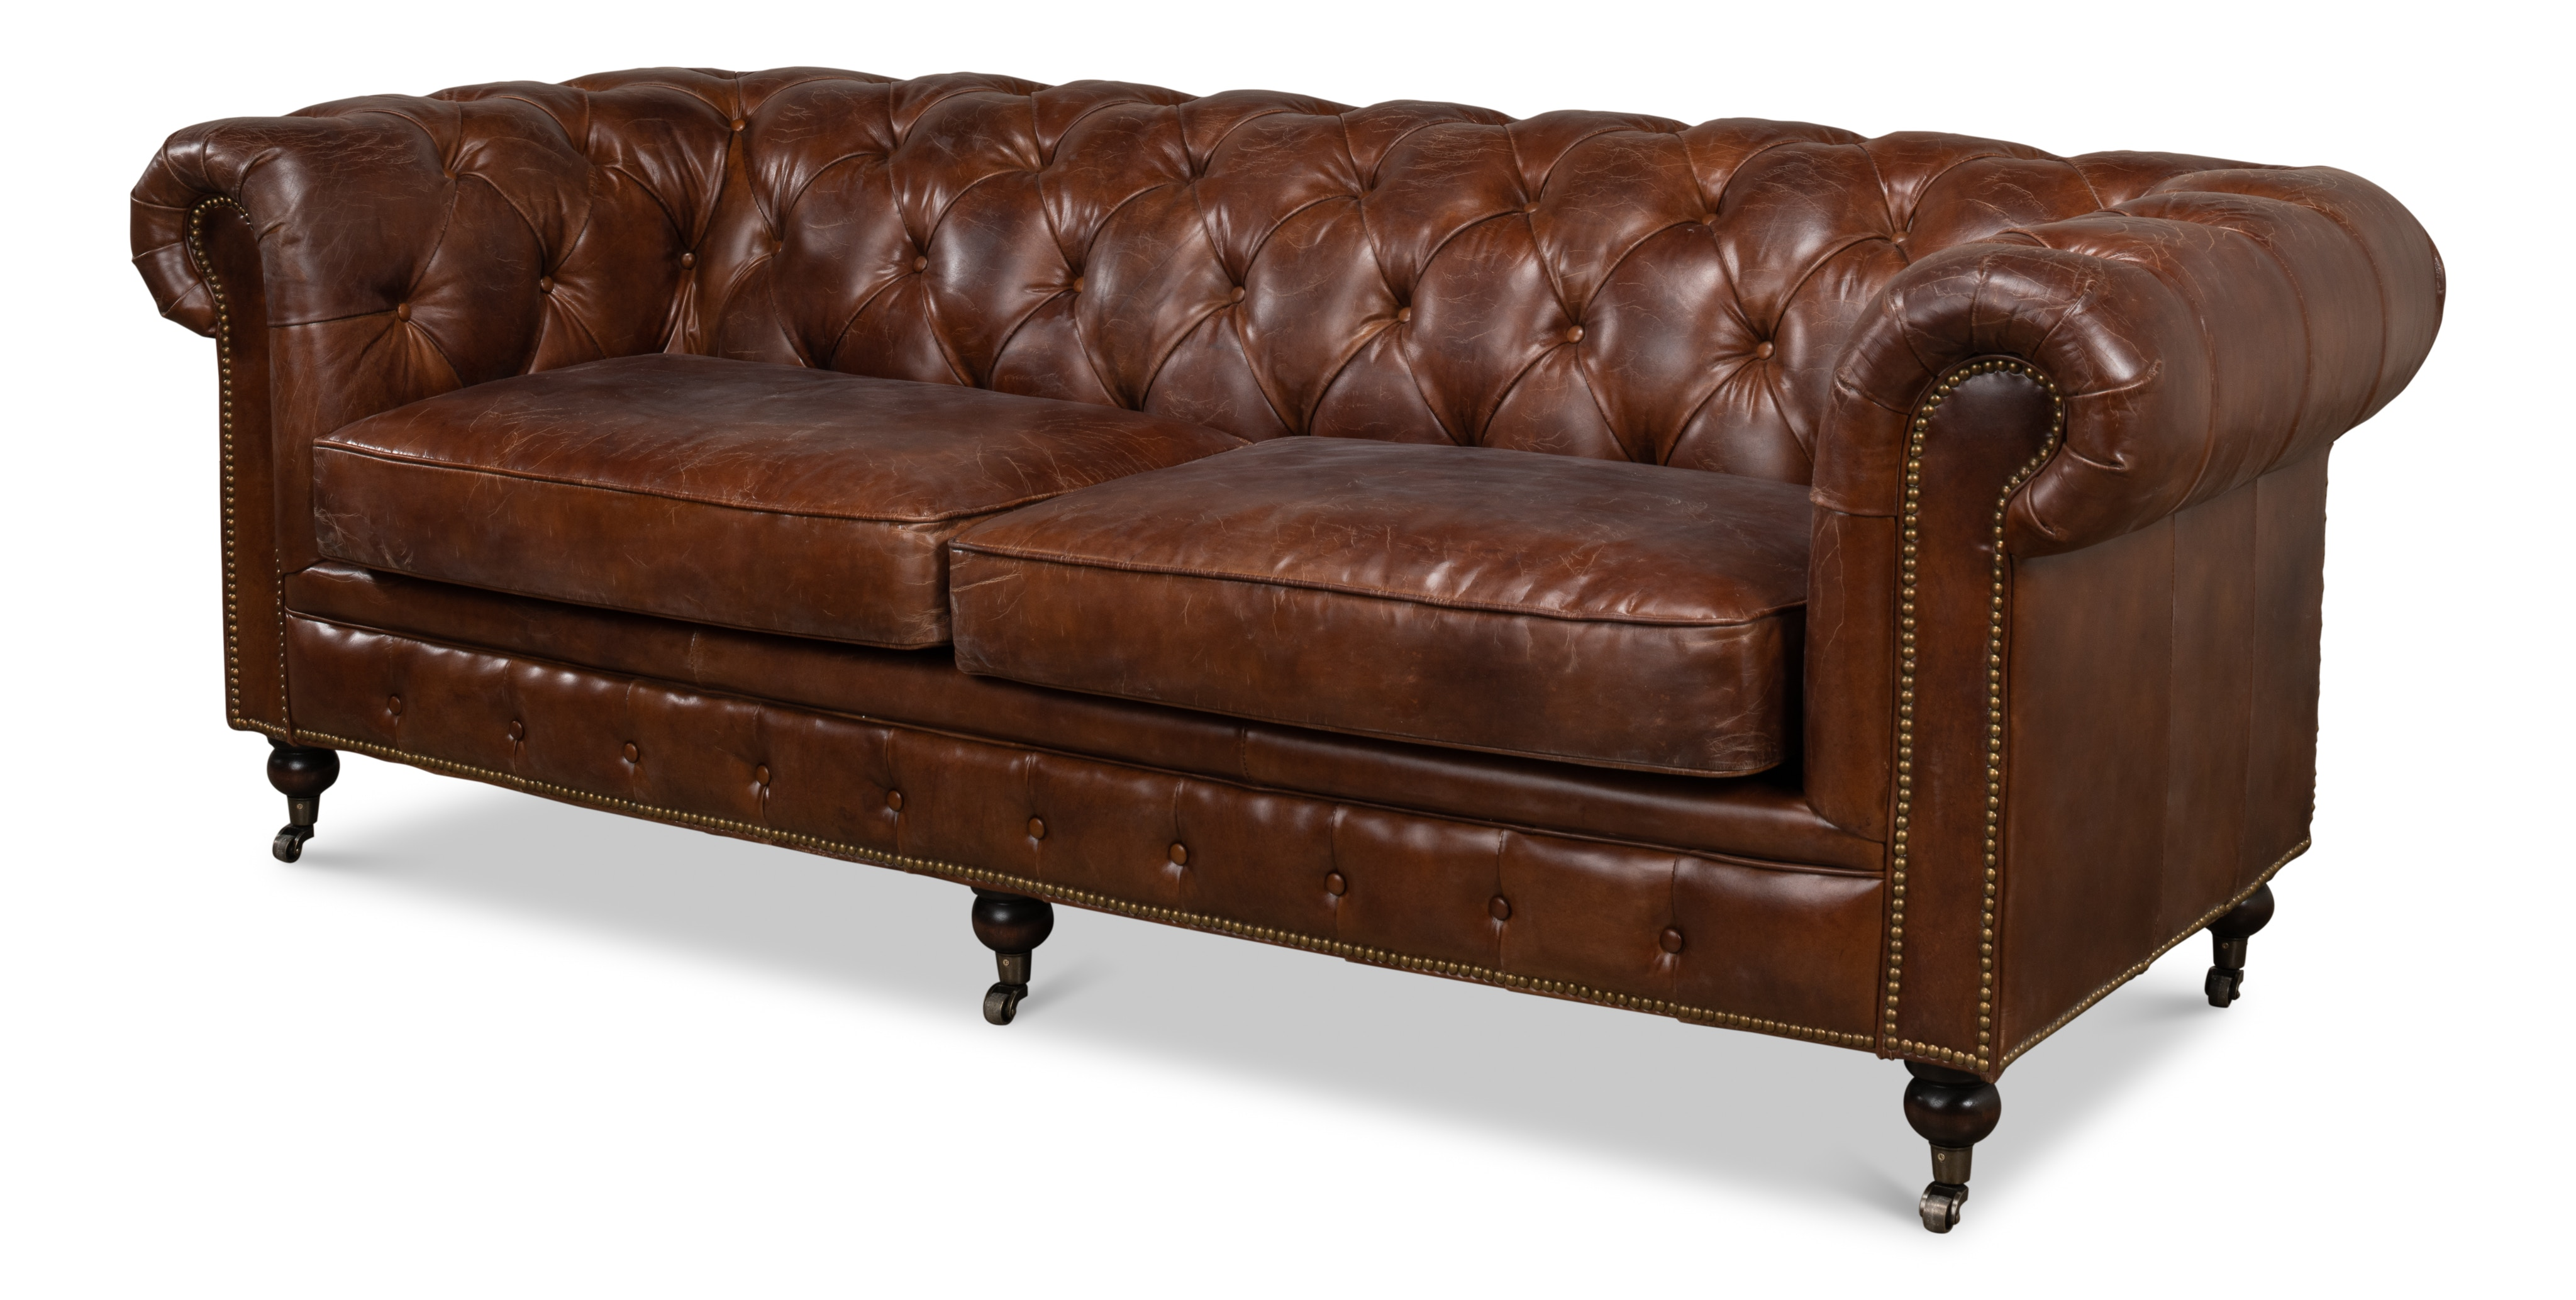 Sarreid Living Room Castered Chesterfield Sofa 29893 Mccurry